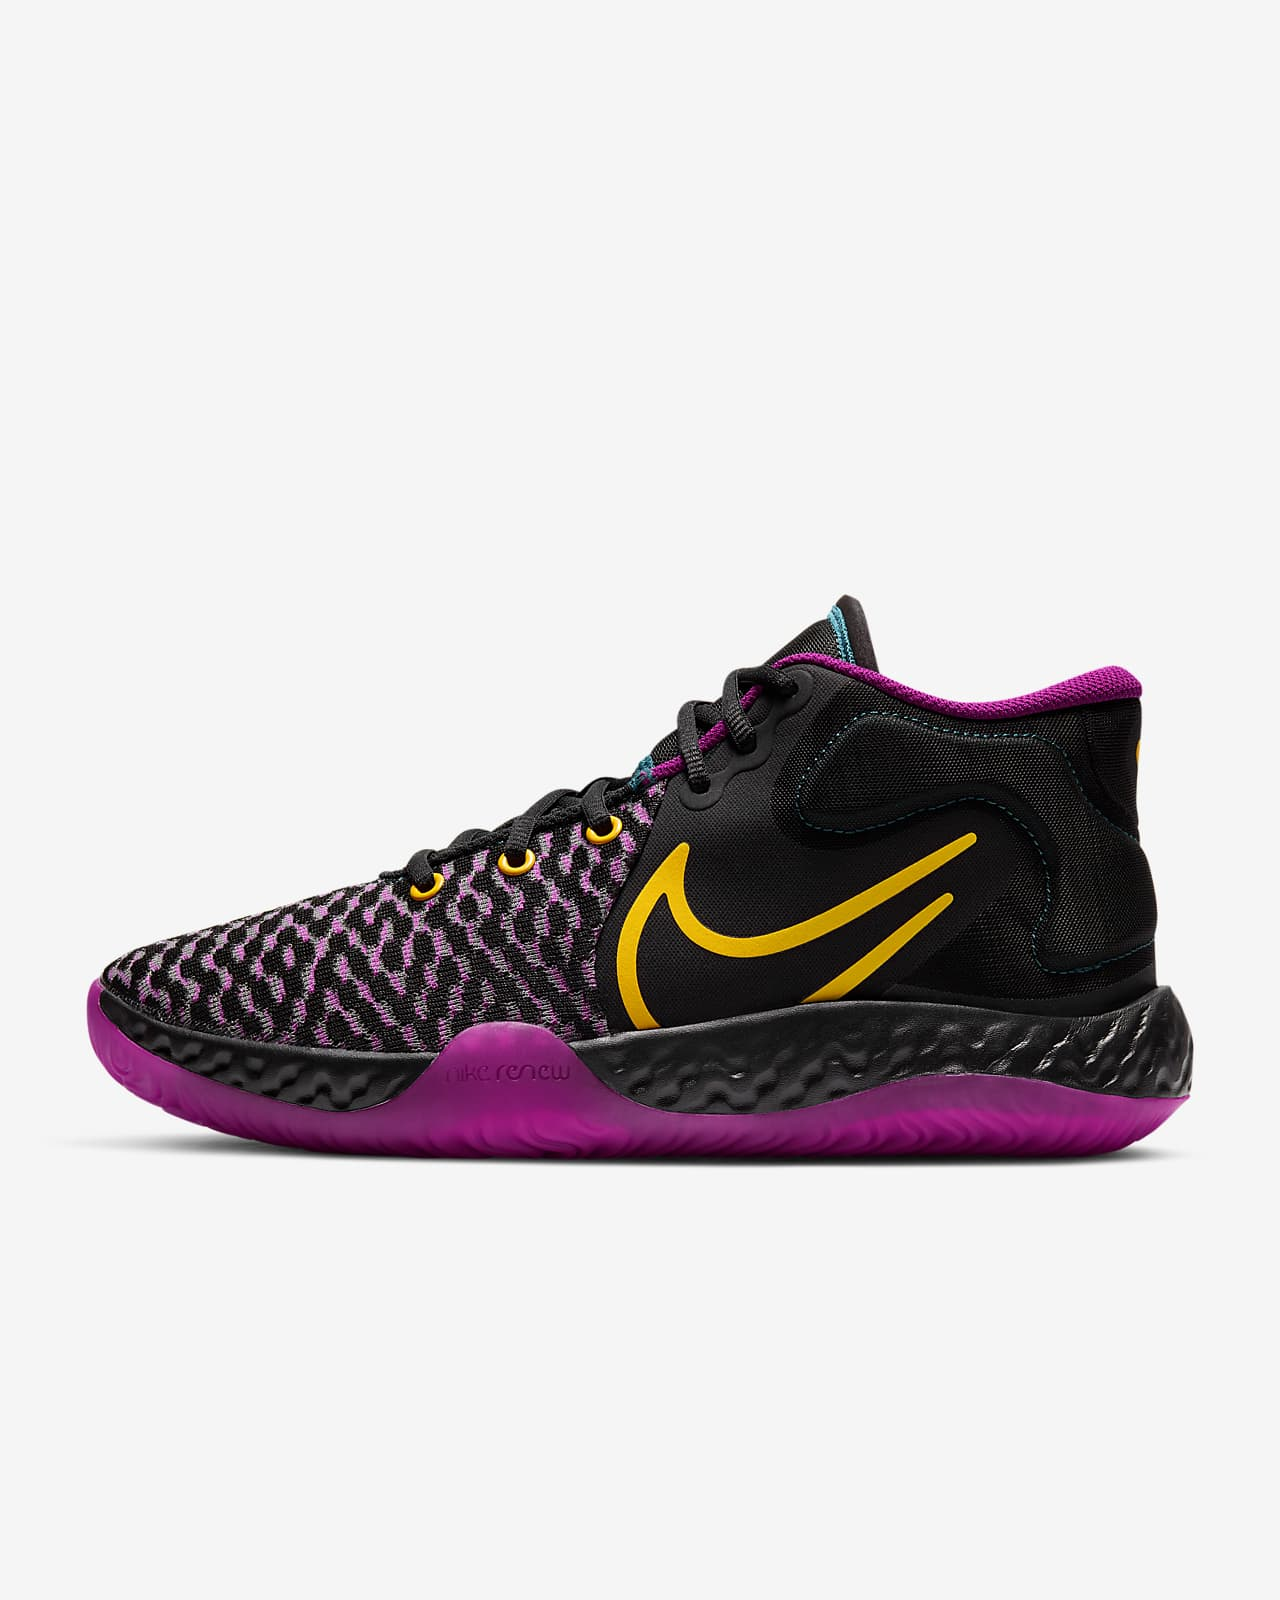 KD Trey 5 VIII EP Basketball Shoe